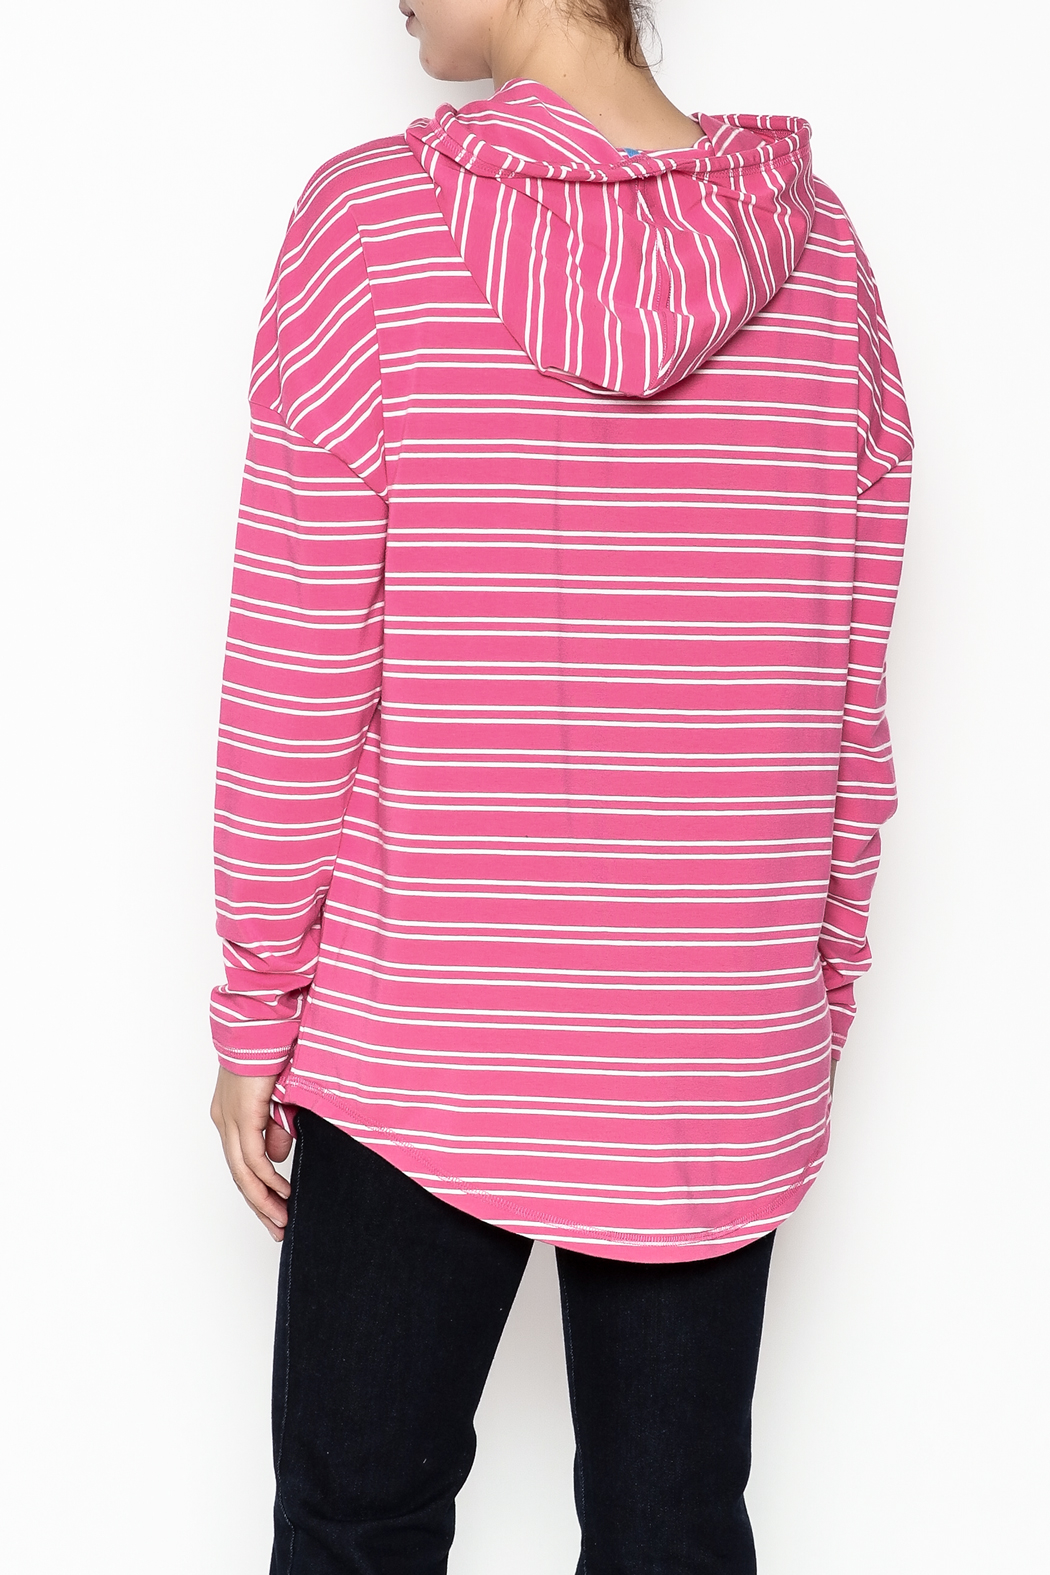 Southern Tide Skipper Pink Stripe Hoodie - Back Cropped Image